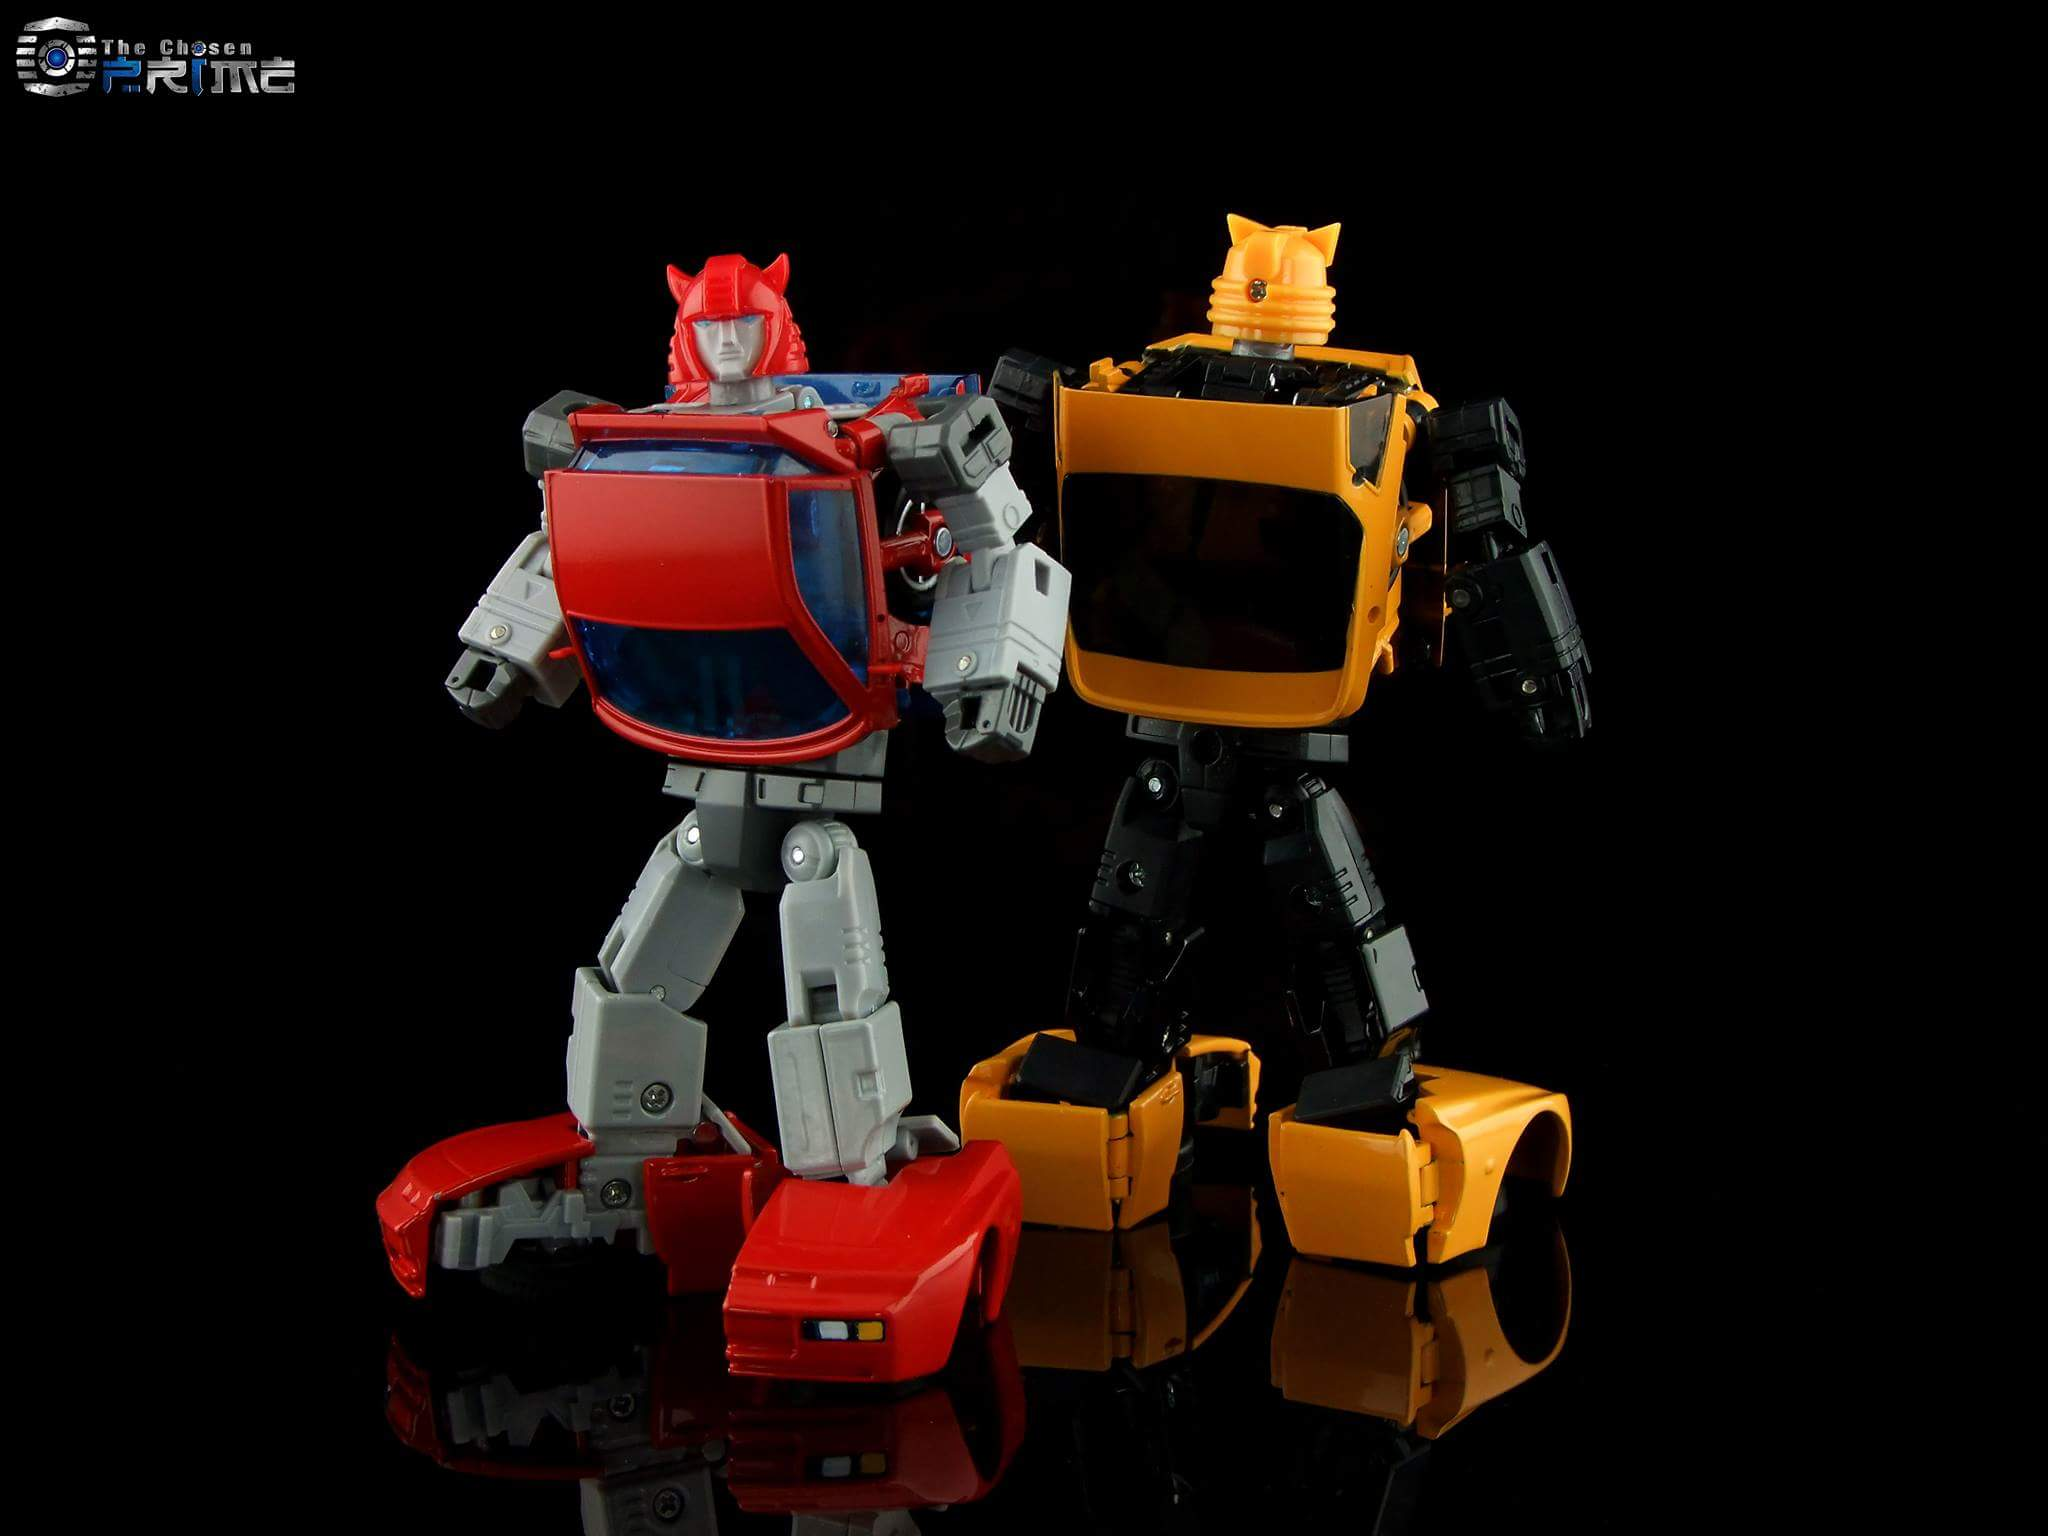 [ACE Collectables] Produit Tiers - Minibots MP - ACE-01 Tumbler (aka Cliffjumper/Matamore), ACE-02 Hiccups (aka Hubcap/Virevolto), ACE-03 Trident (aka Seaspray/Embruns) ENlqC6su